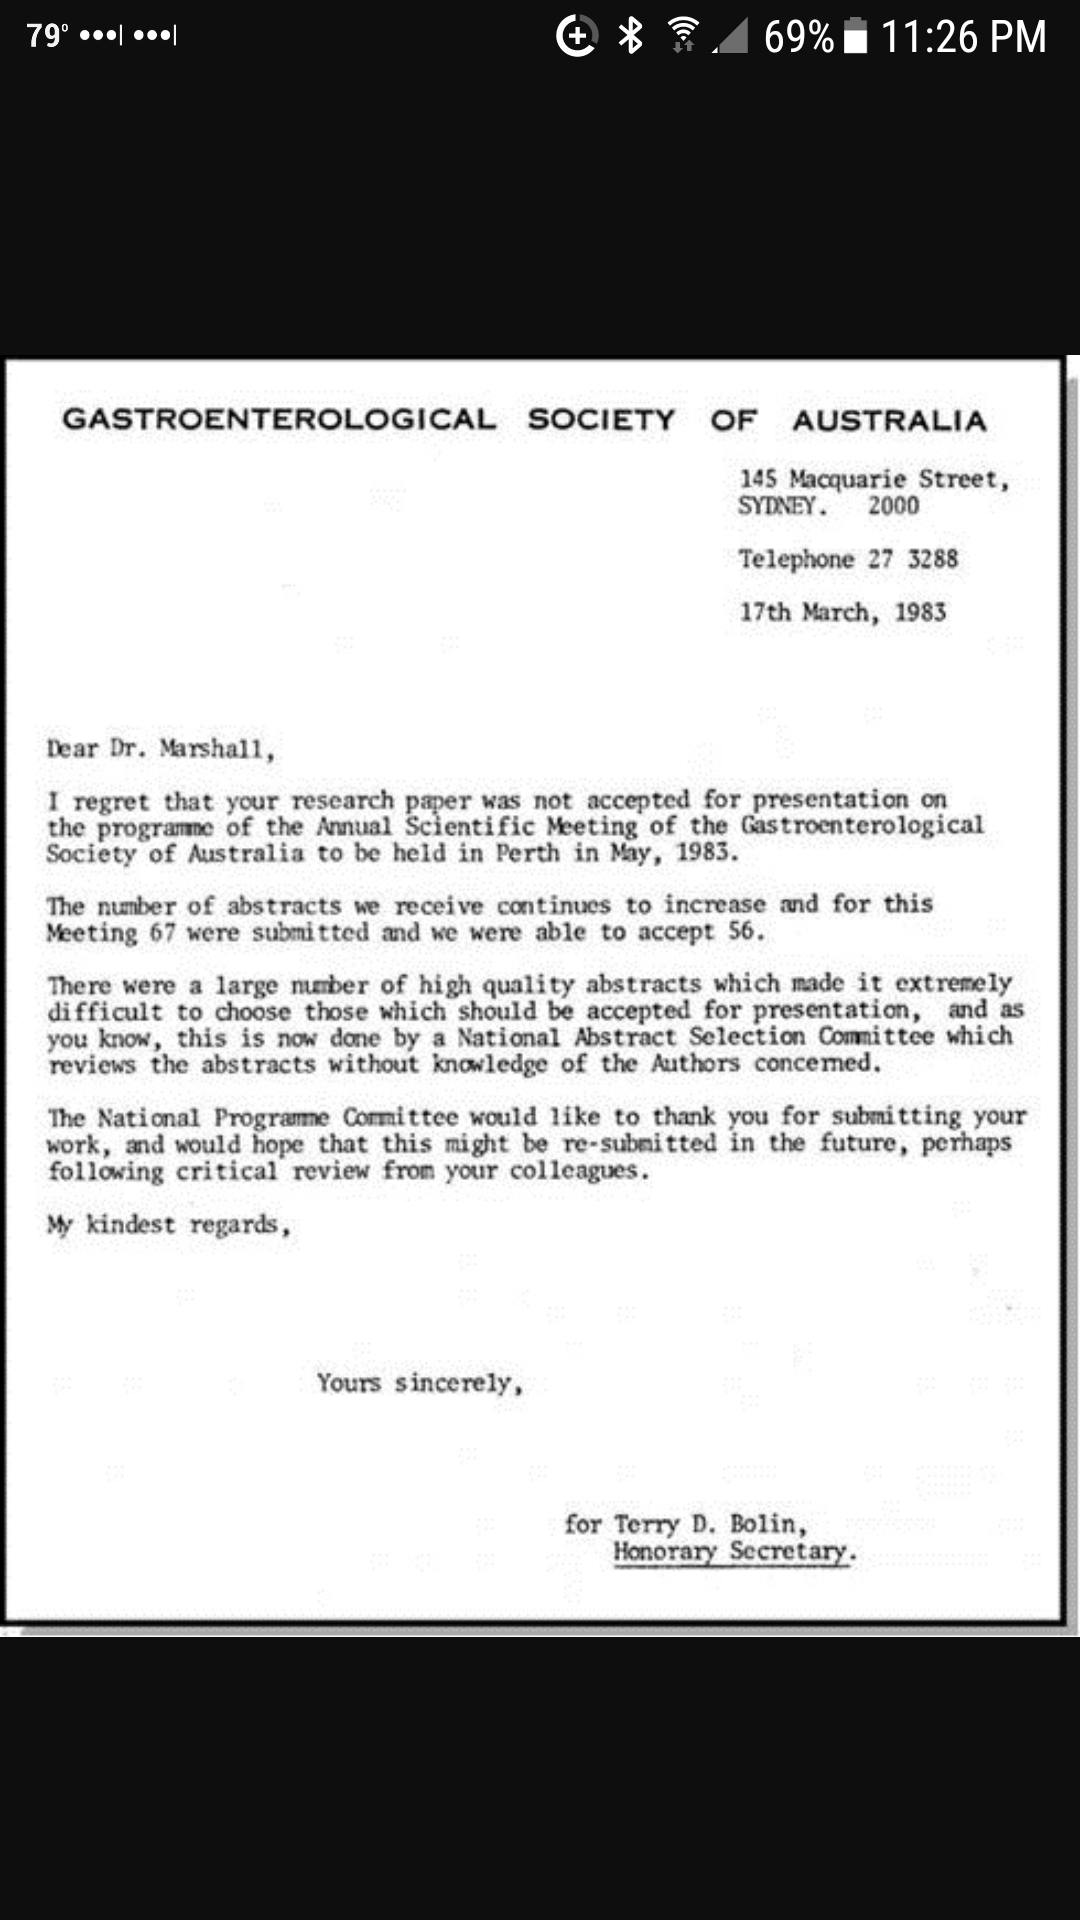 [Image] Rejection letter Barry Marshall received for work that later won a Nobel Prize.